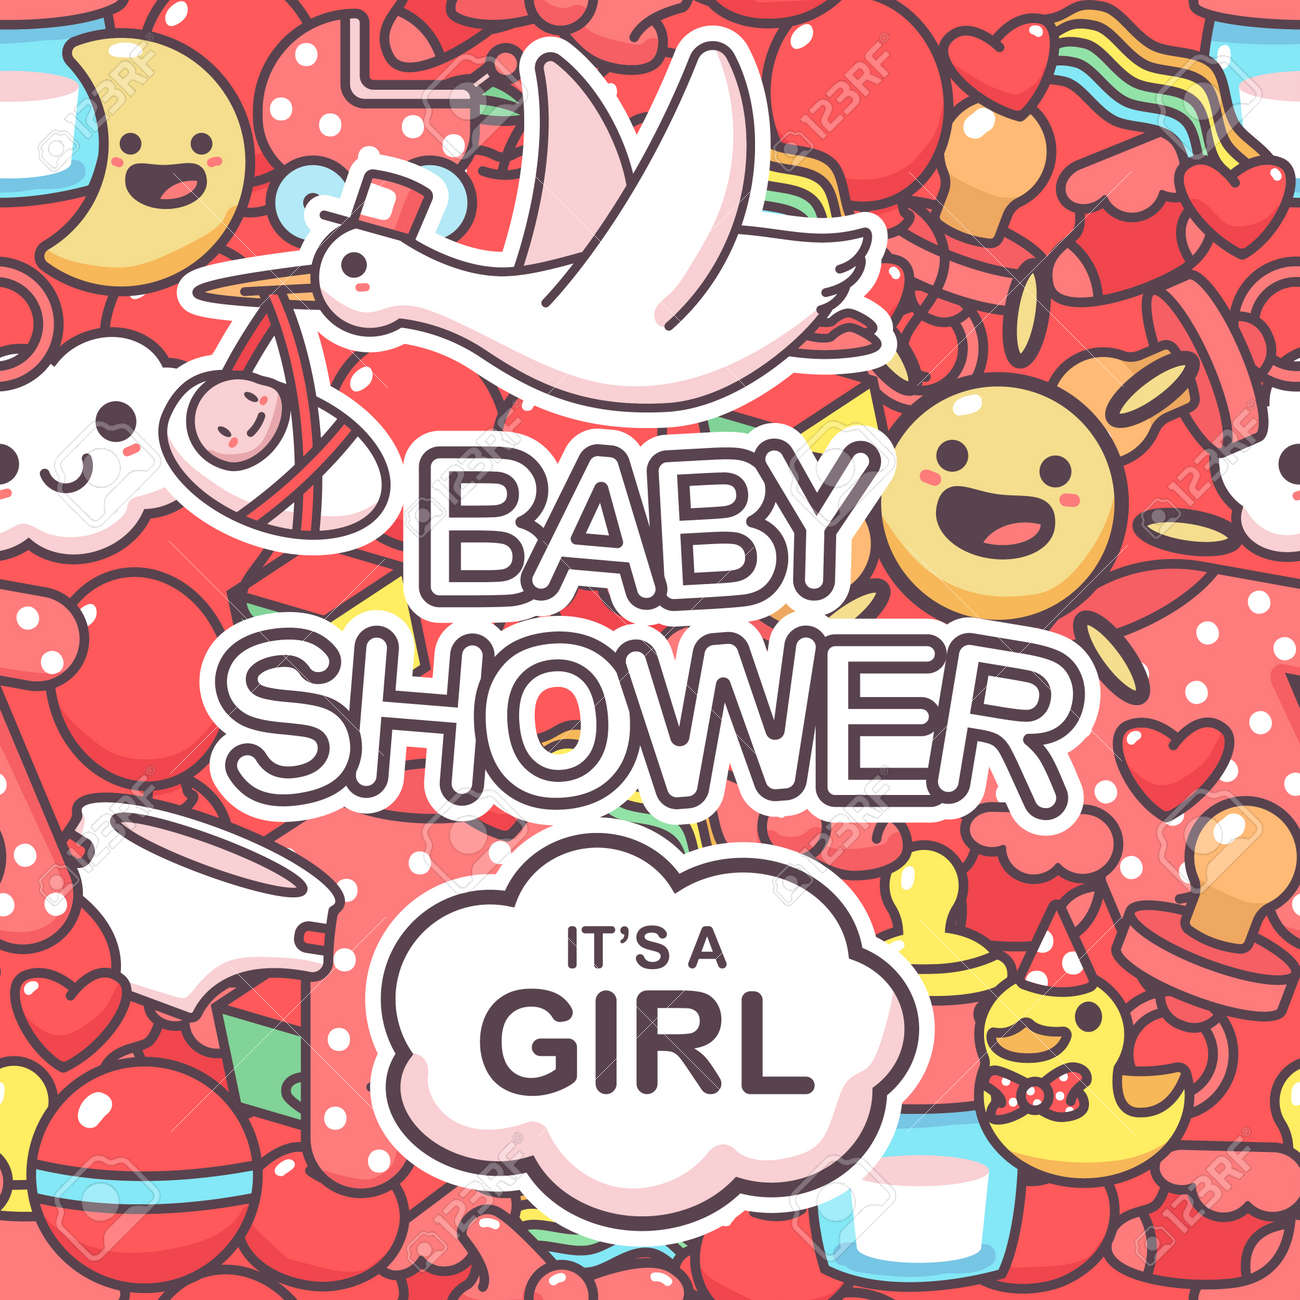 It's a girl vector seamless pattern with doodle elements. Baby shower cartoon background. - 175050364